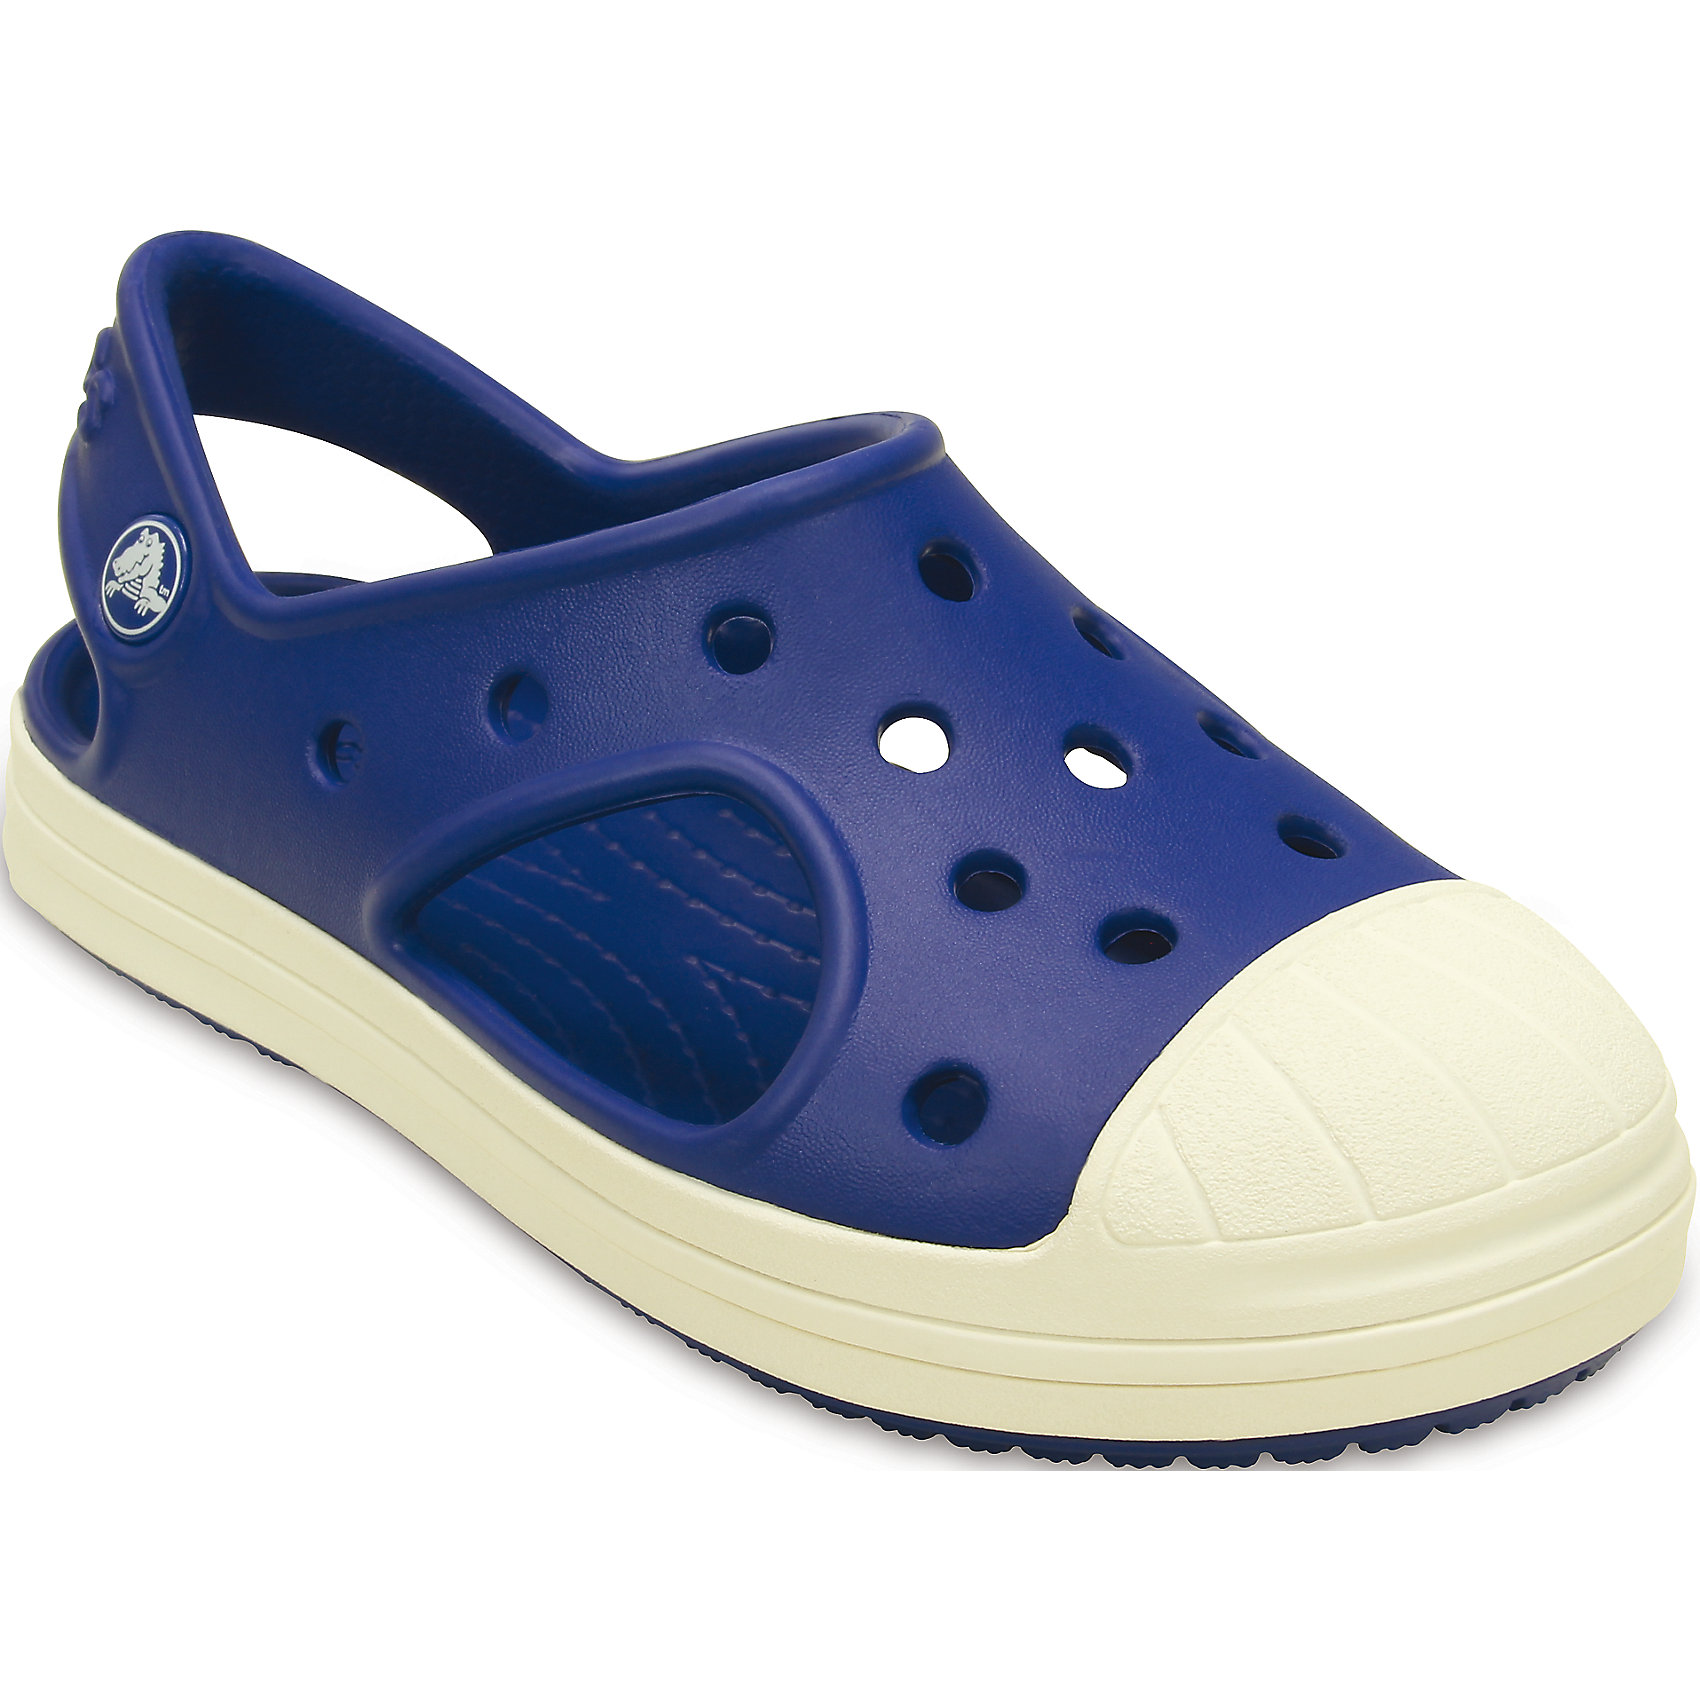 crocs Сандалии Kids' Crocs Bump It Sandal Crocs